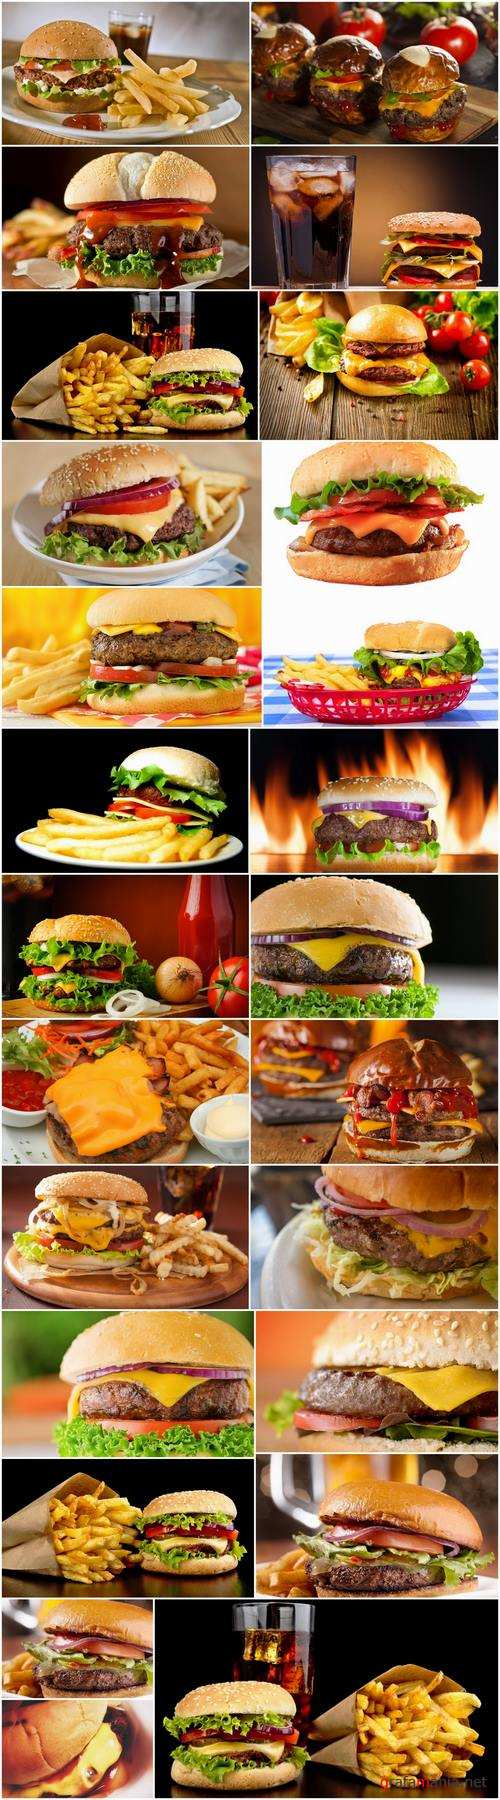 Cheeseburger fast food hamburger sandwich 25 HQ Jpeg